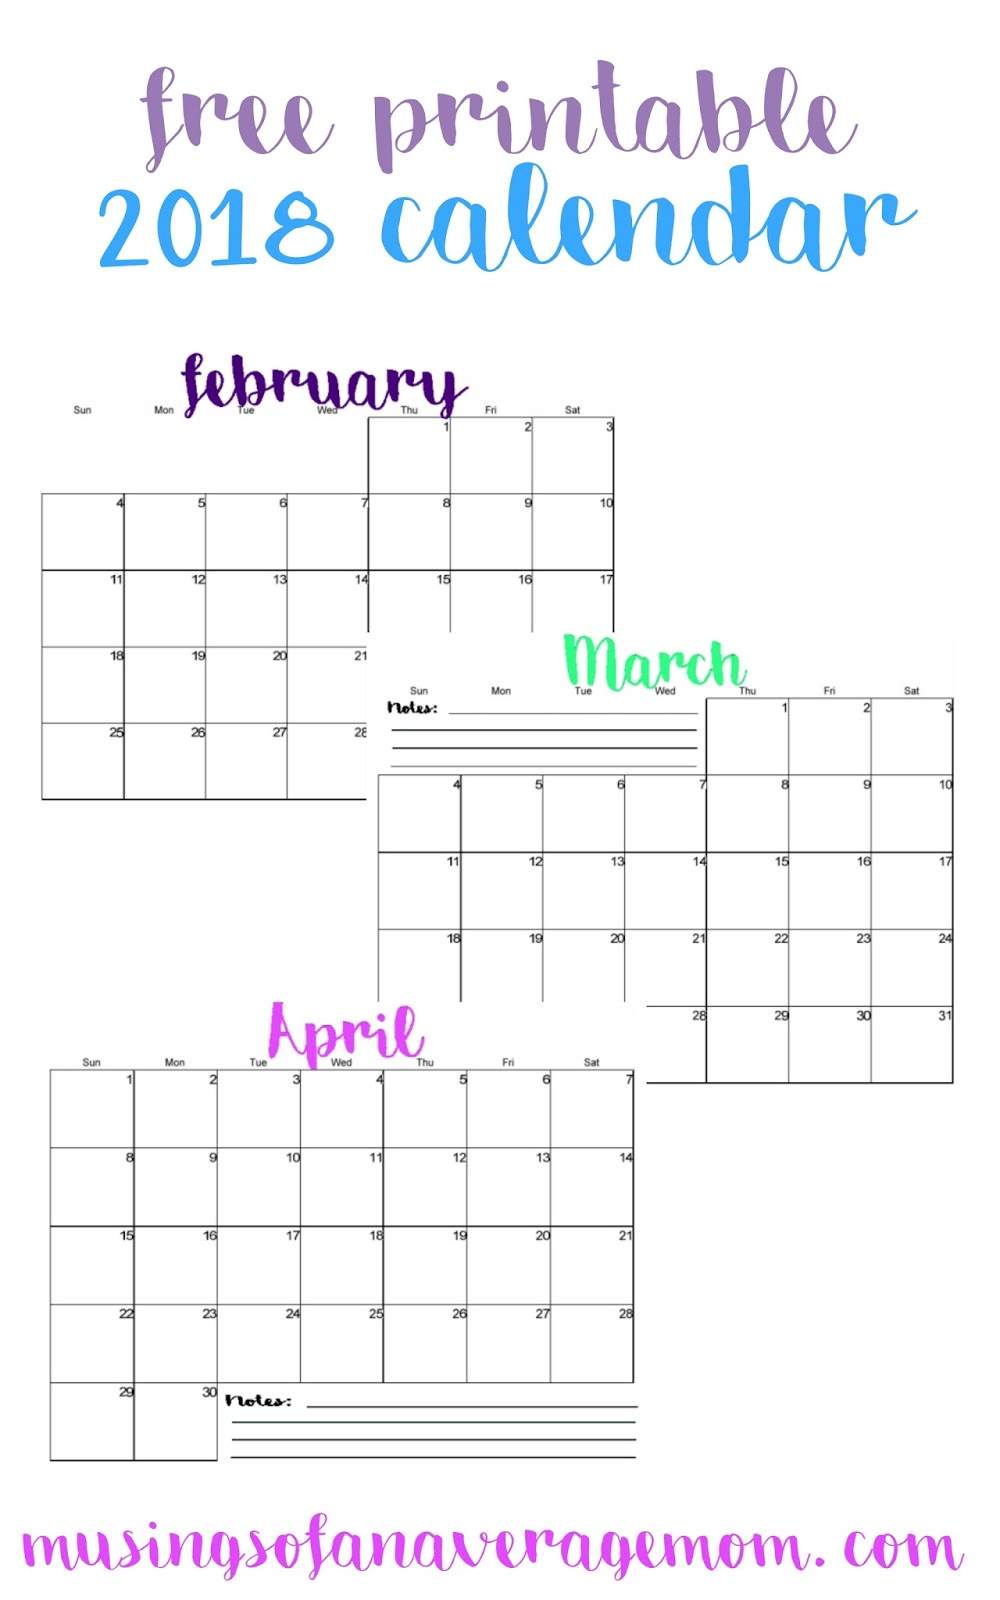 2018 Calendar Printable Free : Musings of an average mom horizontal calendars